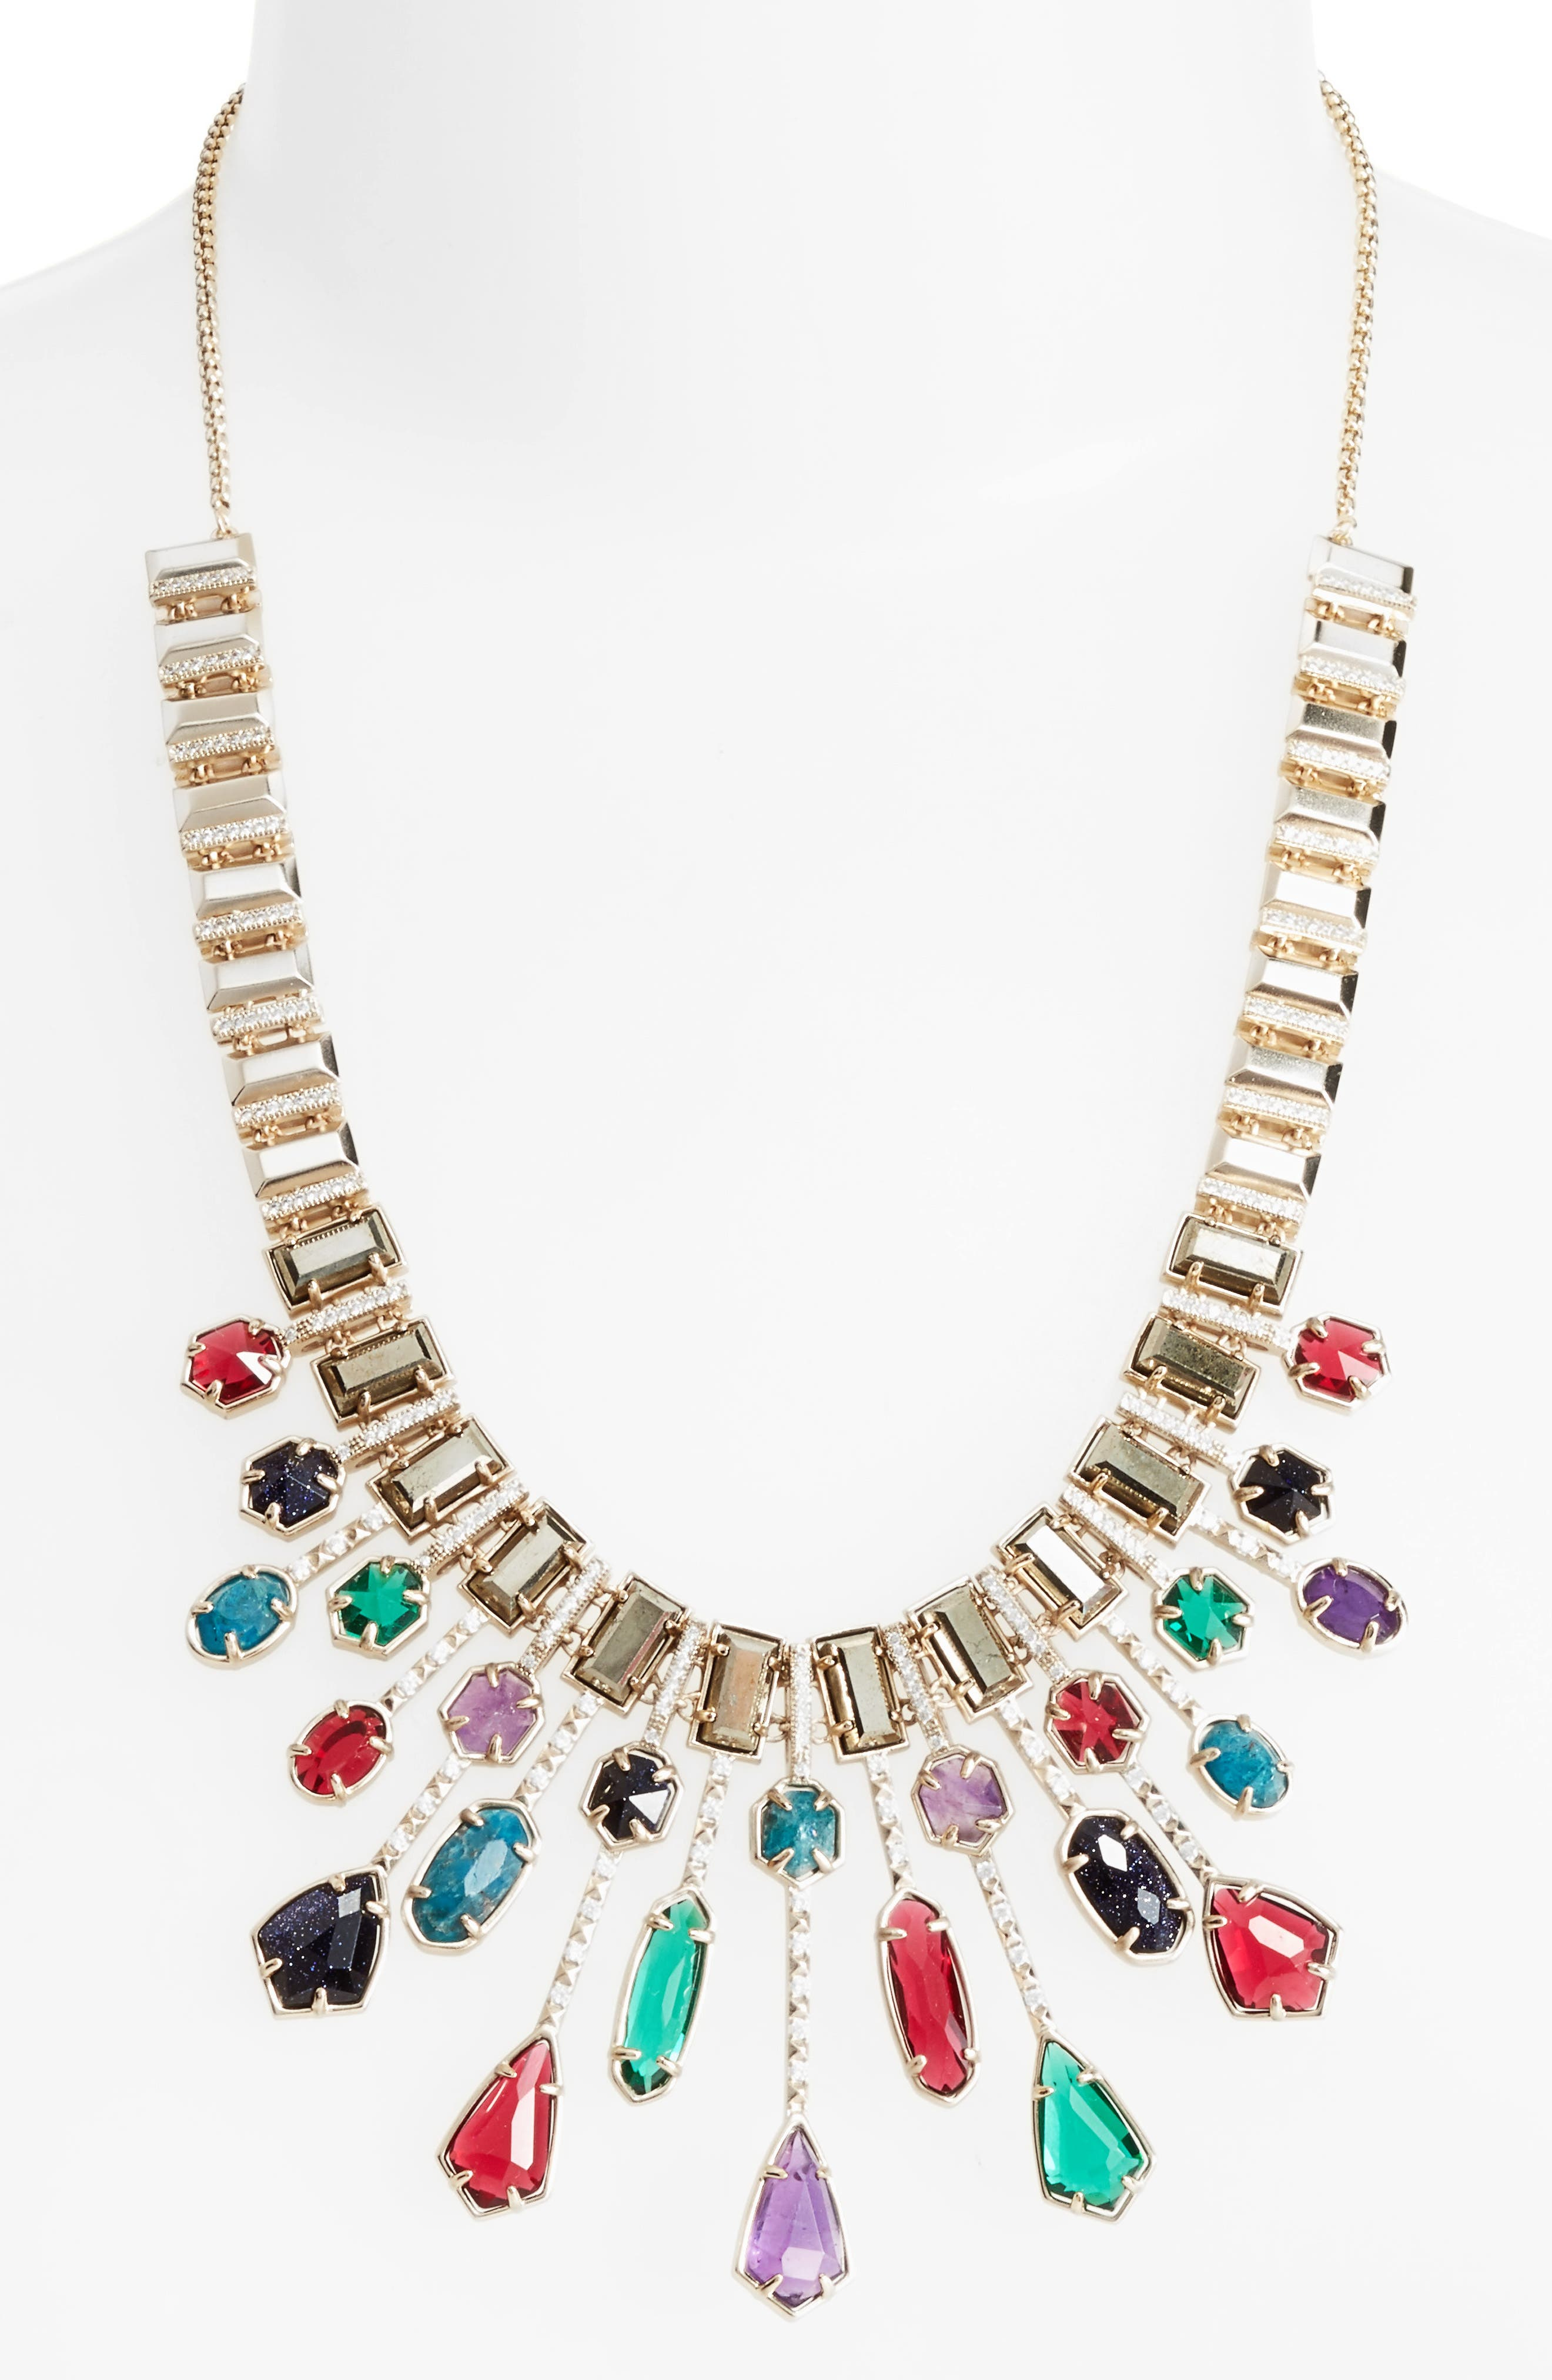 Bette Bib Necklace,                             Alternate thumbnail 2, color,                             Jewel Tone Mix/ Brass